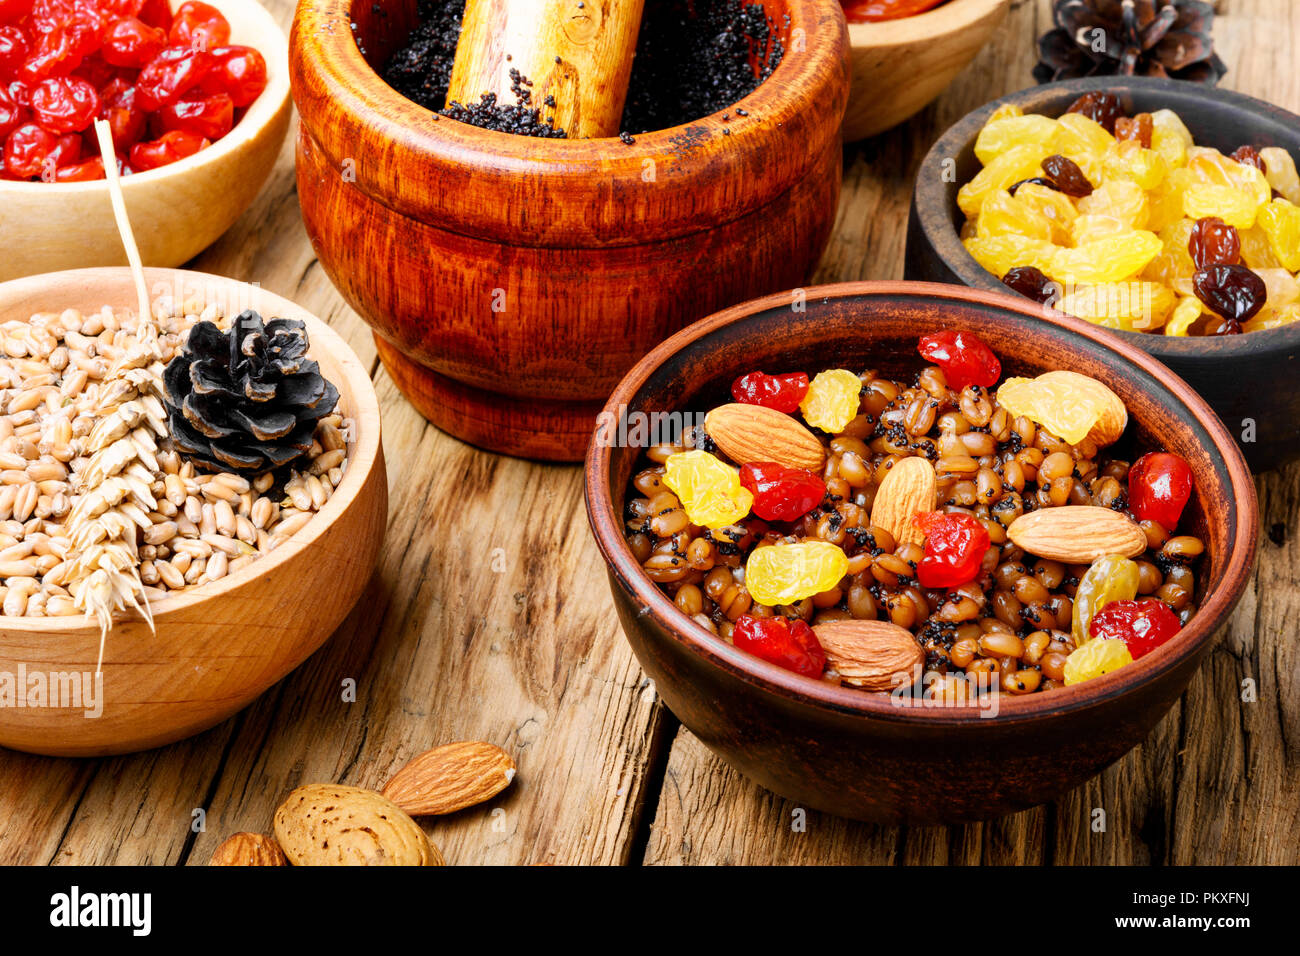 Christmas porridge.Kutya.Traditional Christmas table.Ukrainian Christmas kutya.Ritual Christmas dish - Stock Image